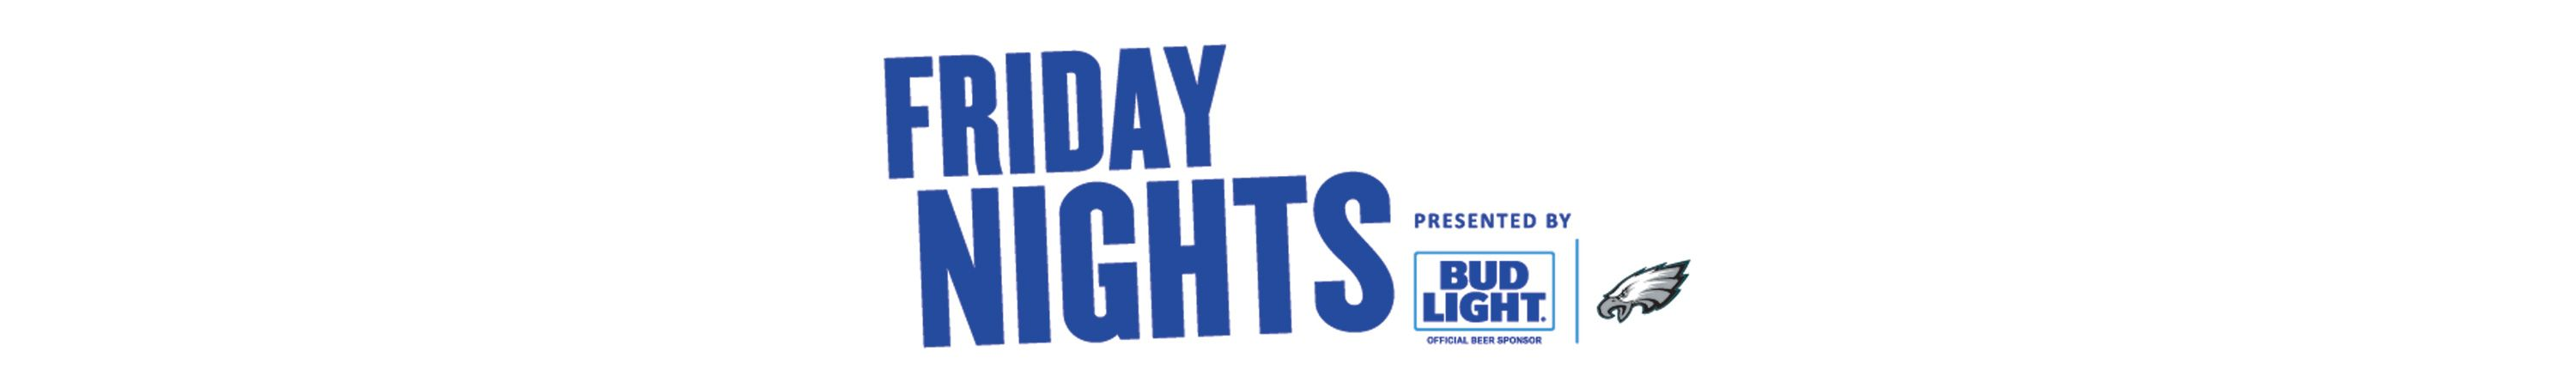 FridayNights-Budlight-r1